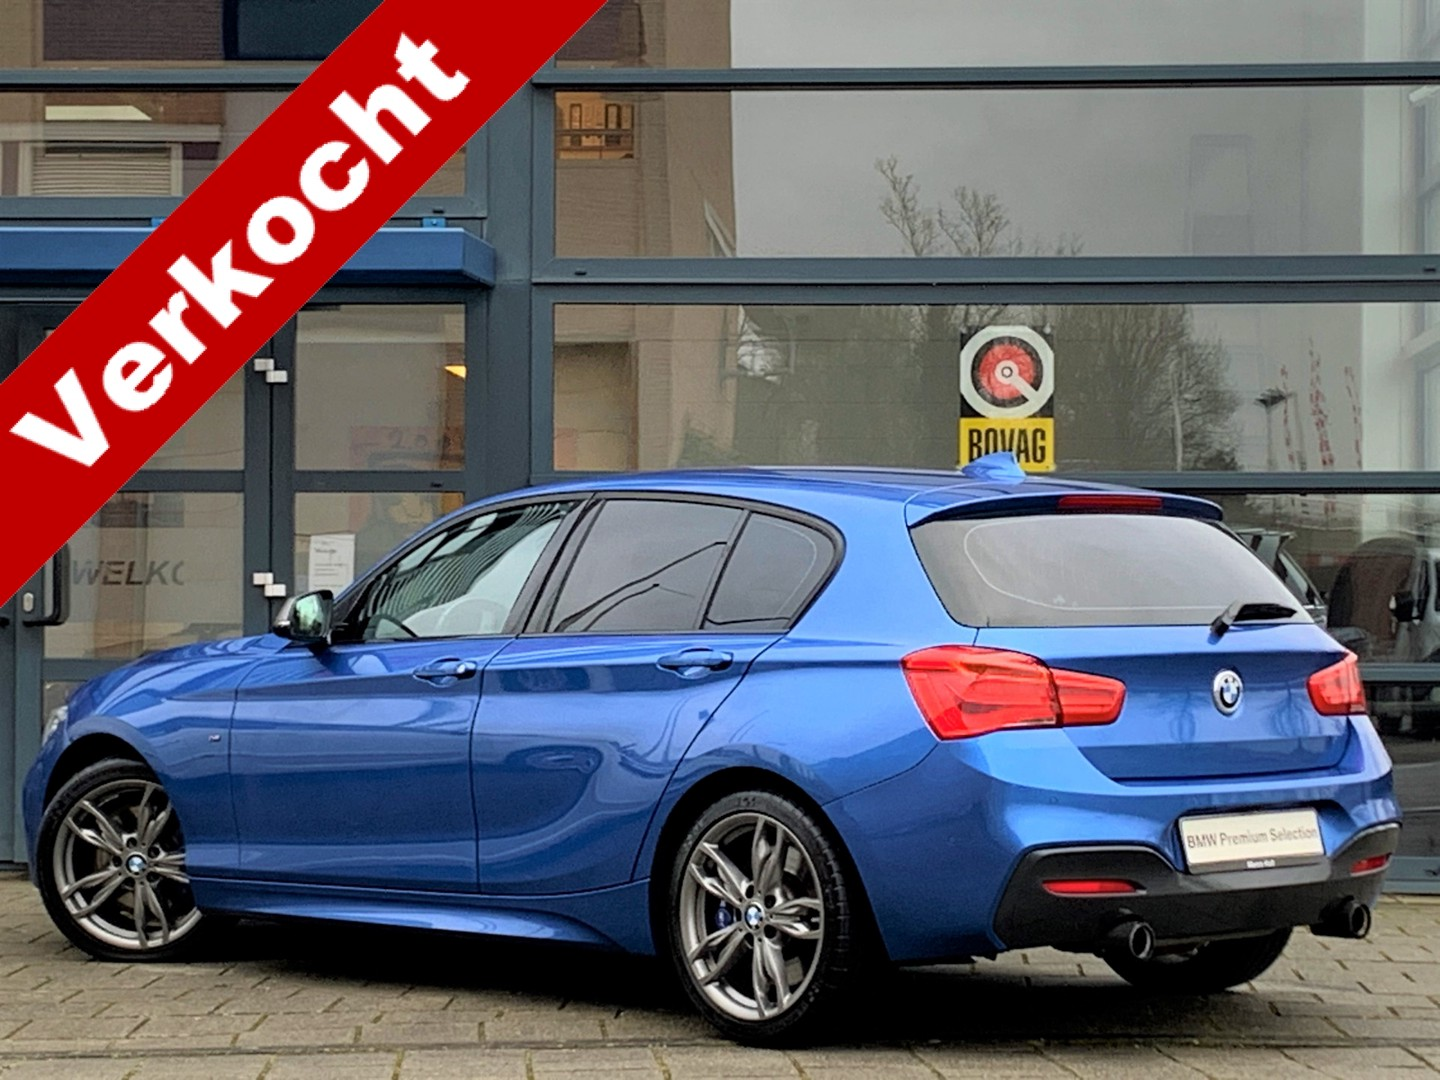 Bmw 1 serie M140i executive 340 pk automaat 5 deurs / navigatie / harman- kardon hifi / apple carplay vb / full led / dab